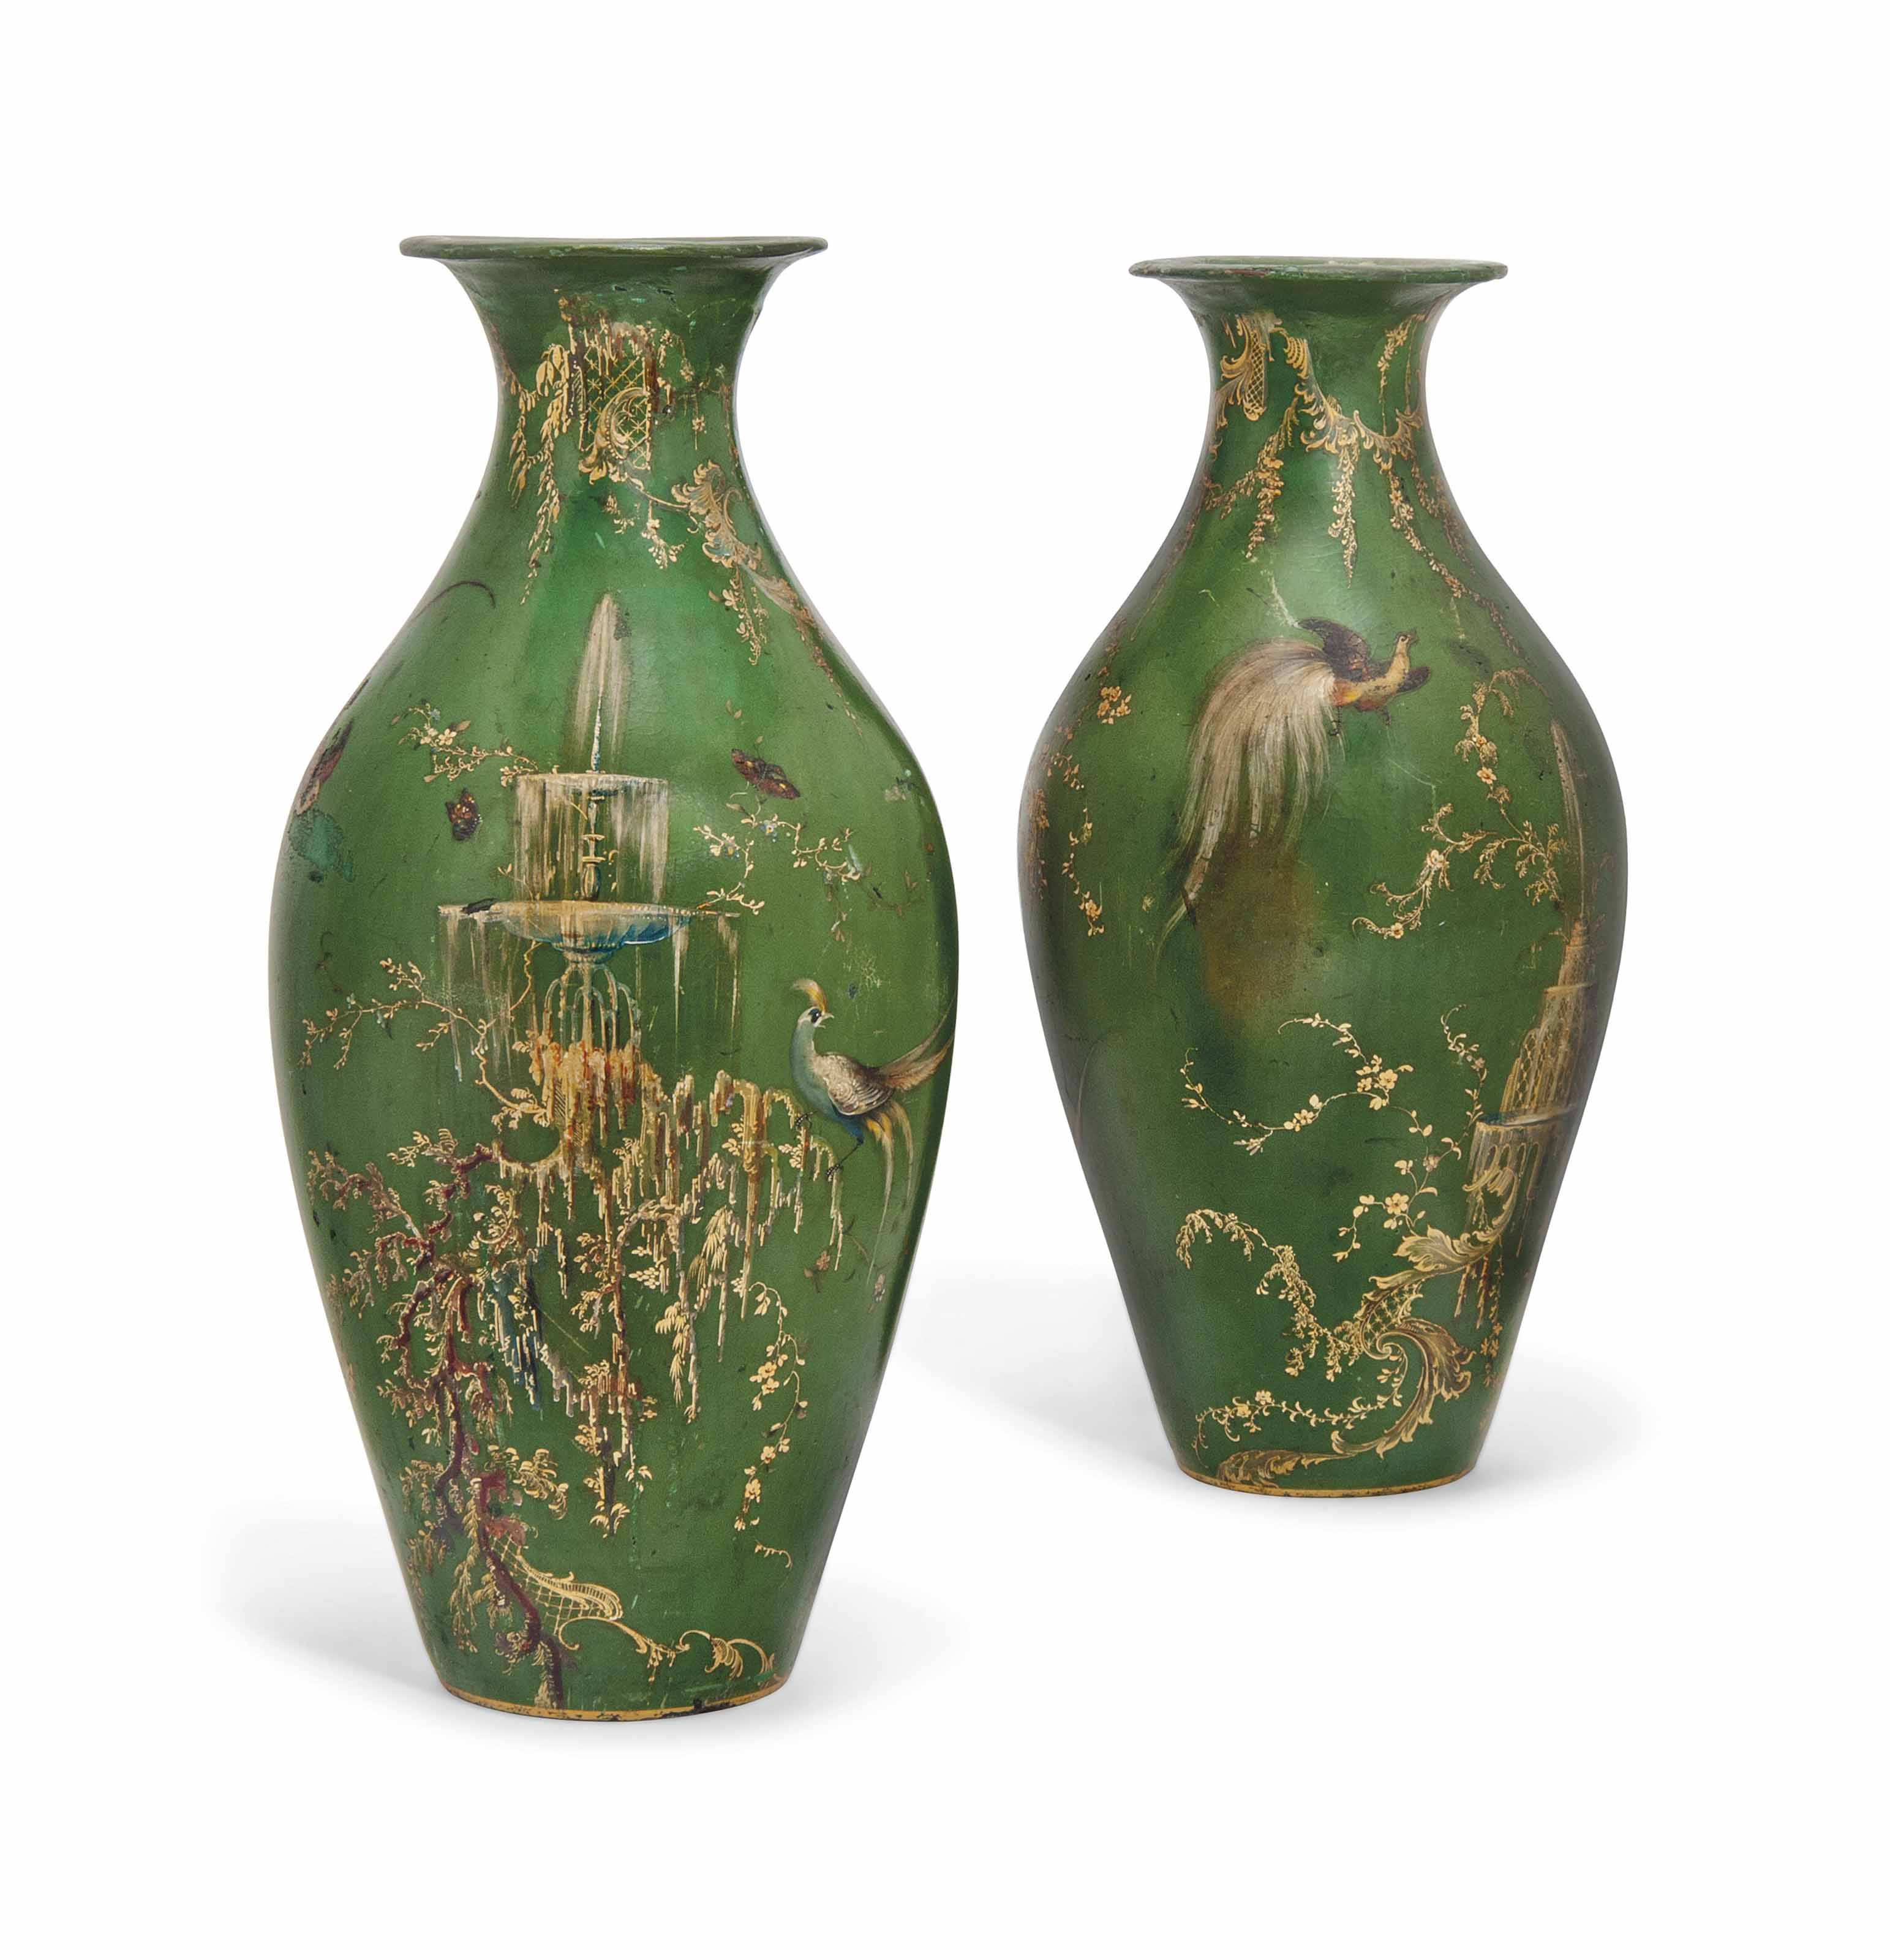 A PAIR OF VICTORIAN GREEN AND GILT-JAPANNED PAPIER-MACHE VASES